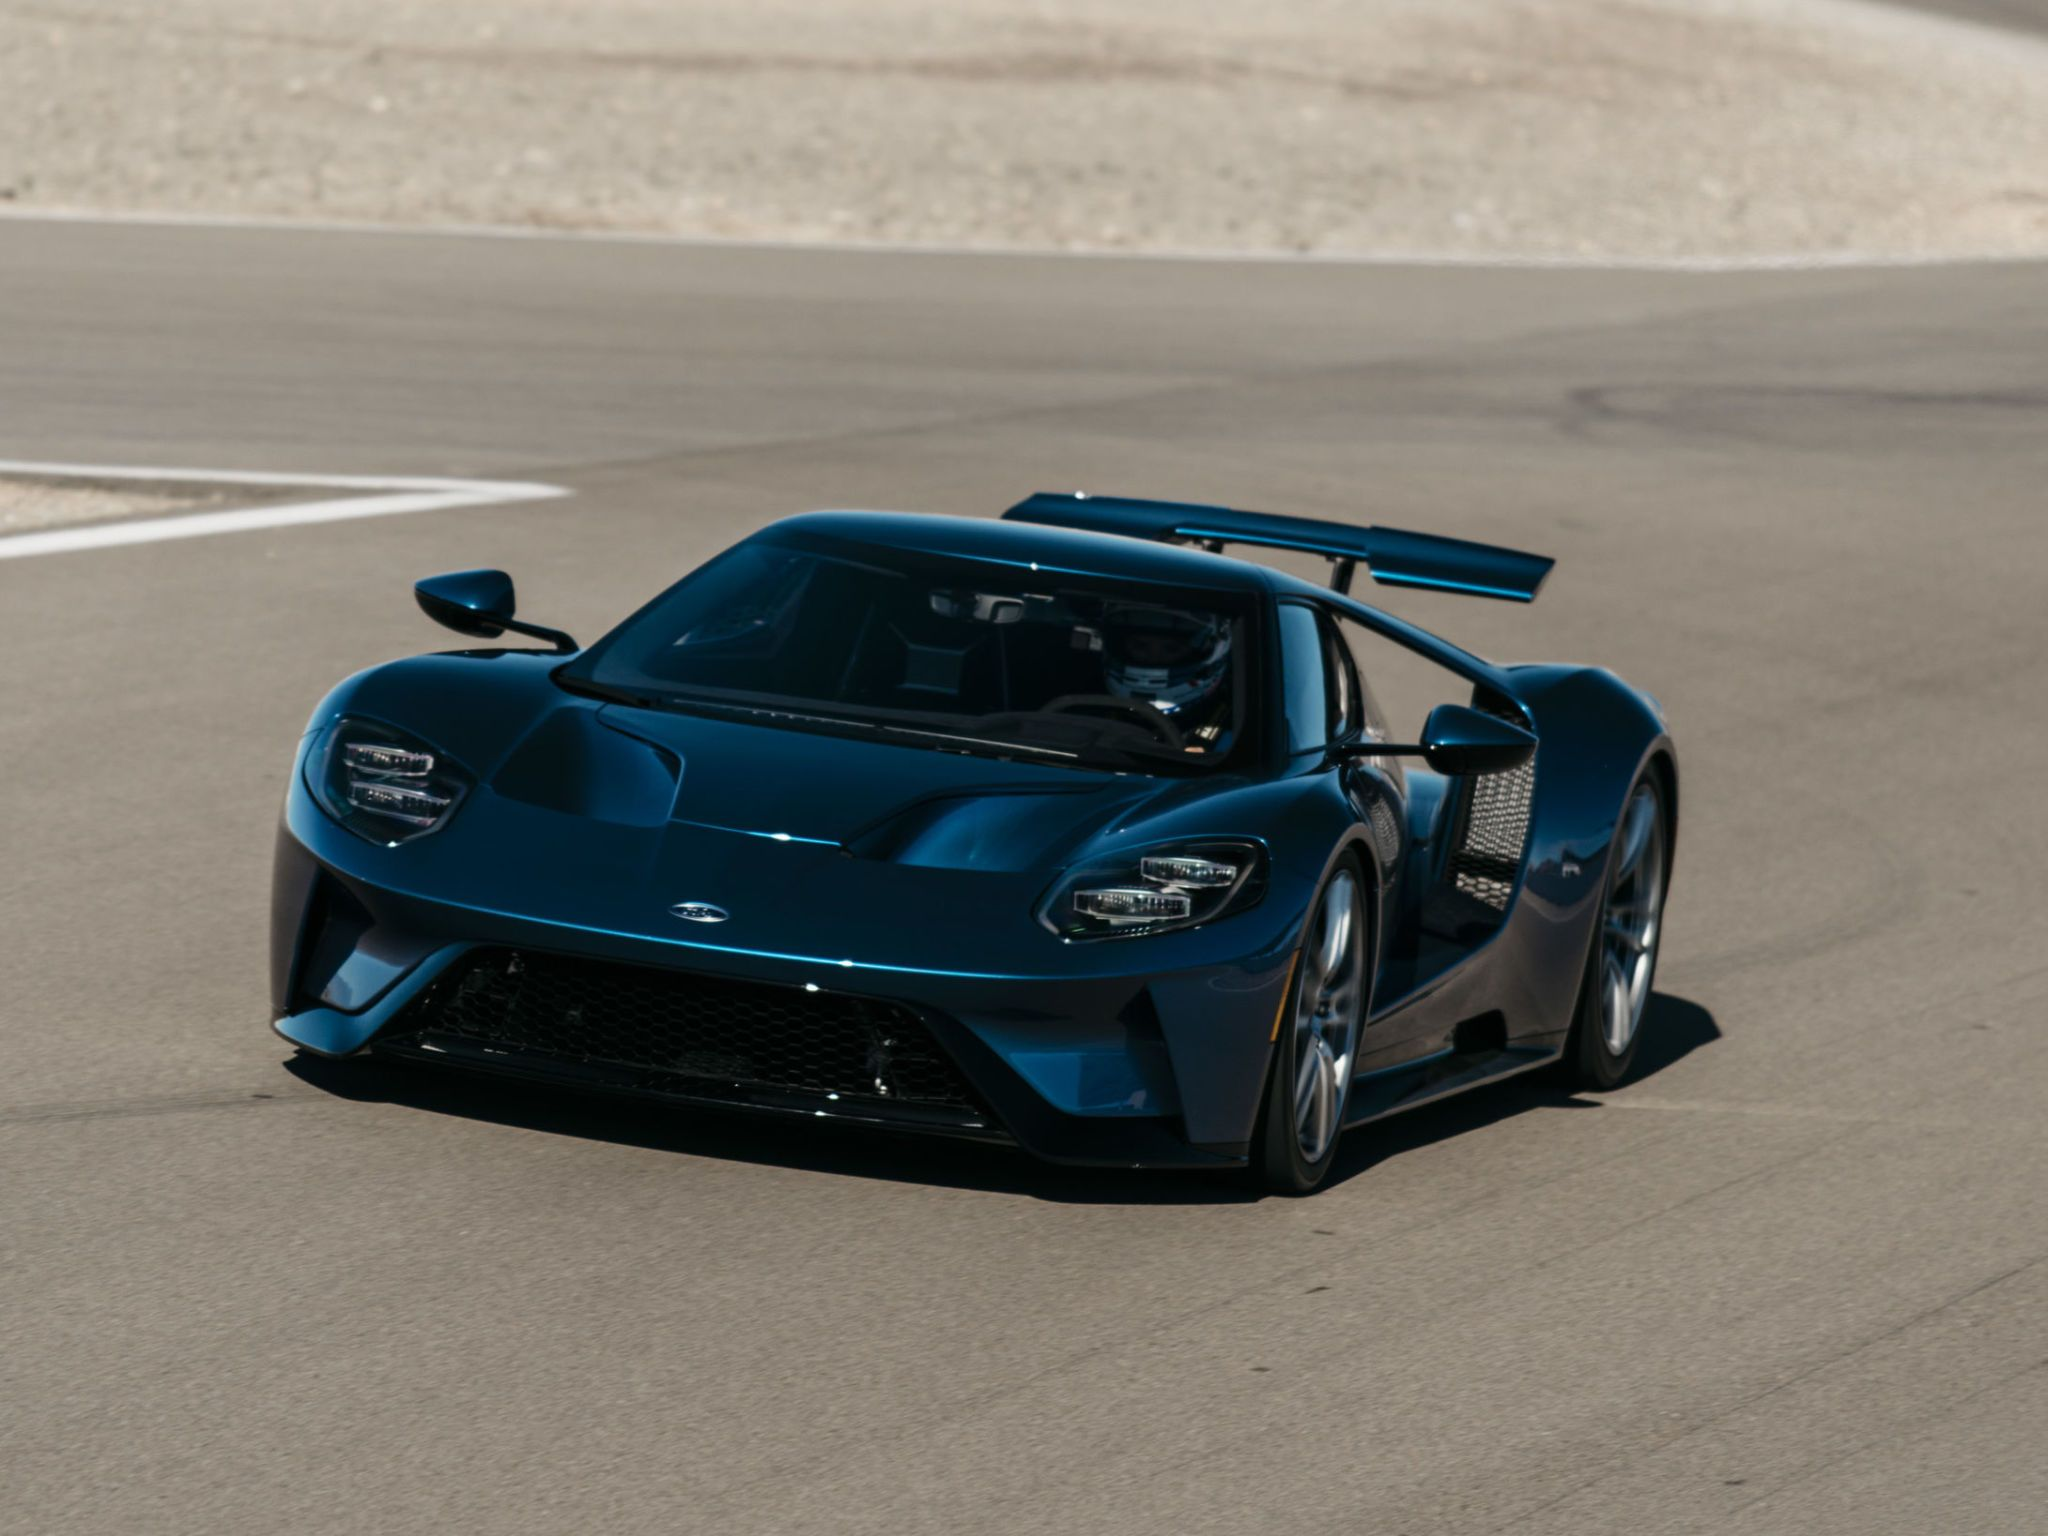 First Ride The All-New Ford GT & New Ford GT First Ride - 2017 Ford GT Review markmcfarlin.com